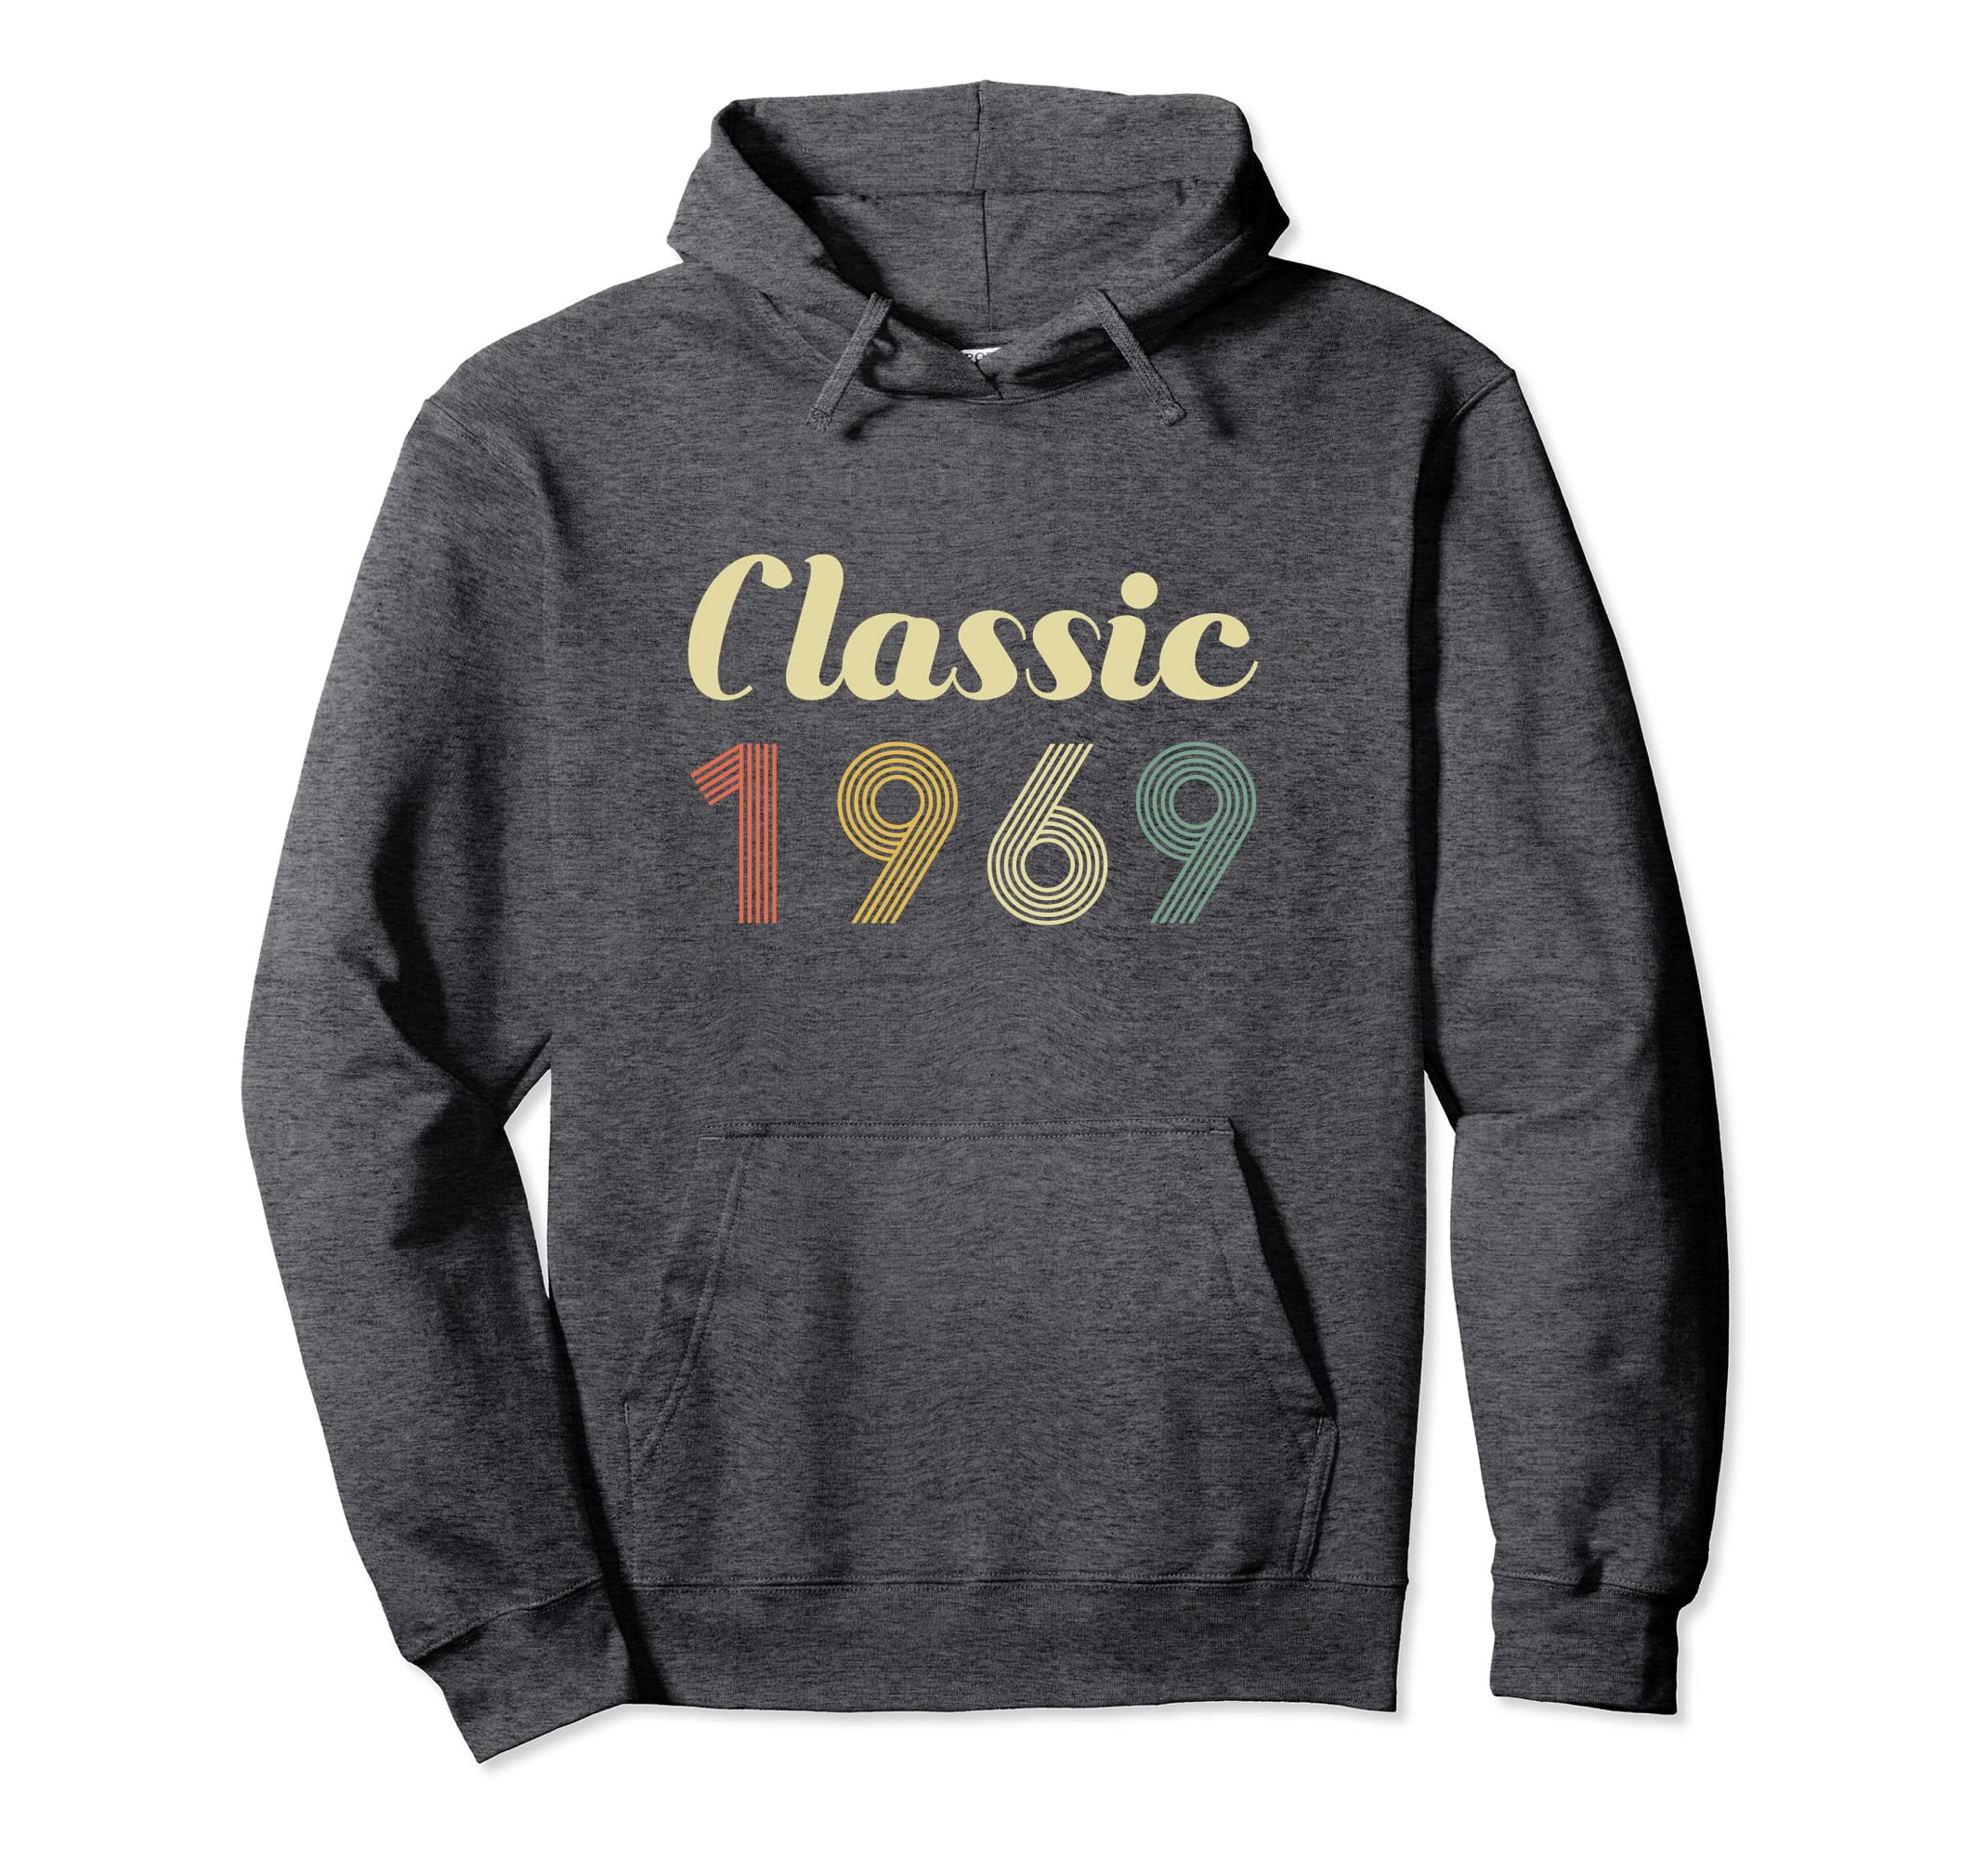 49th Birthday Gift Hoodie Classic Born In 1969 49 Year Old-Protee